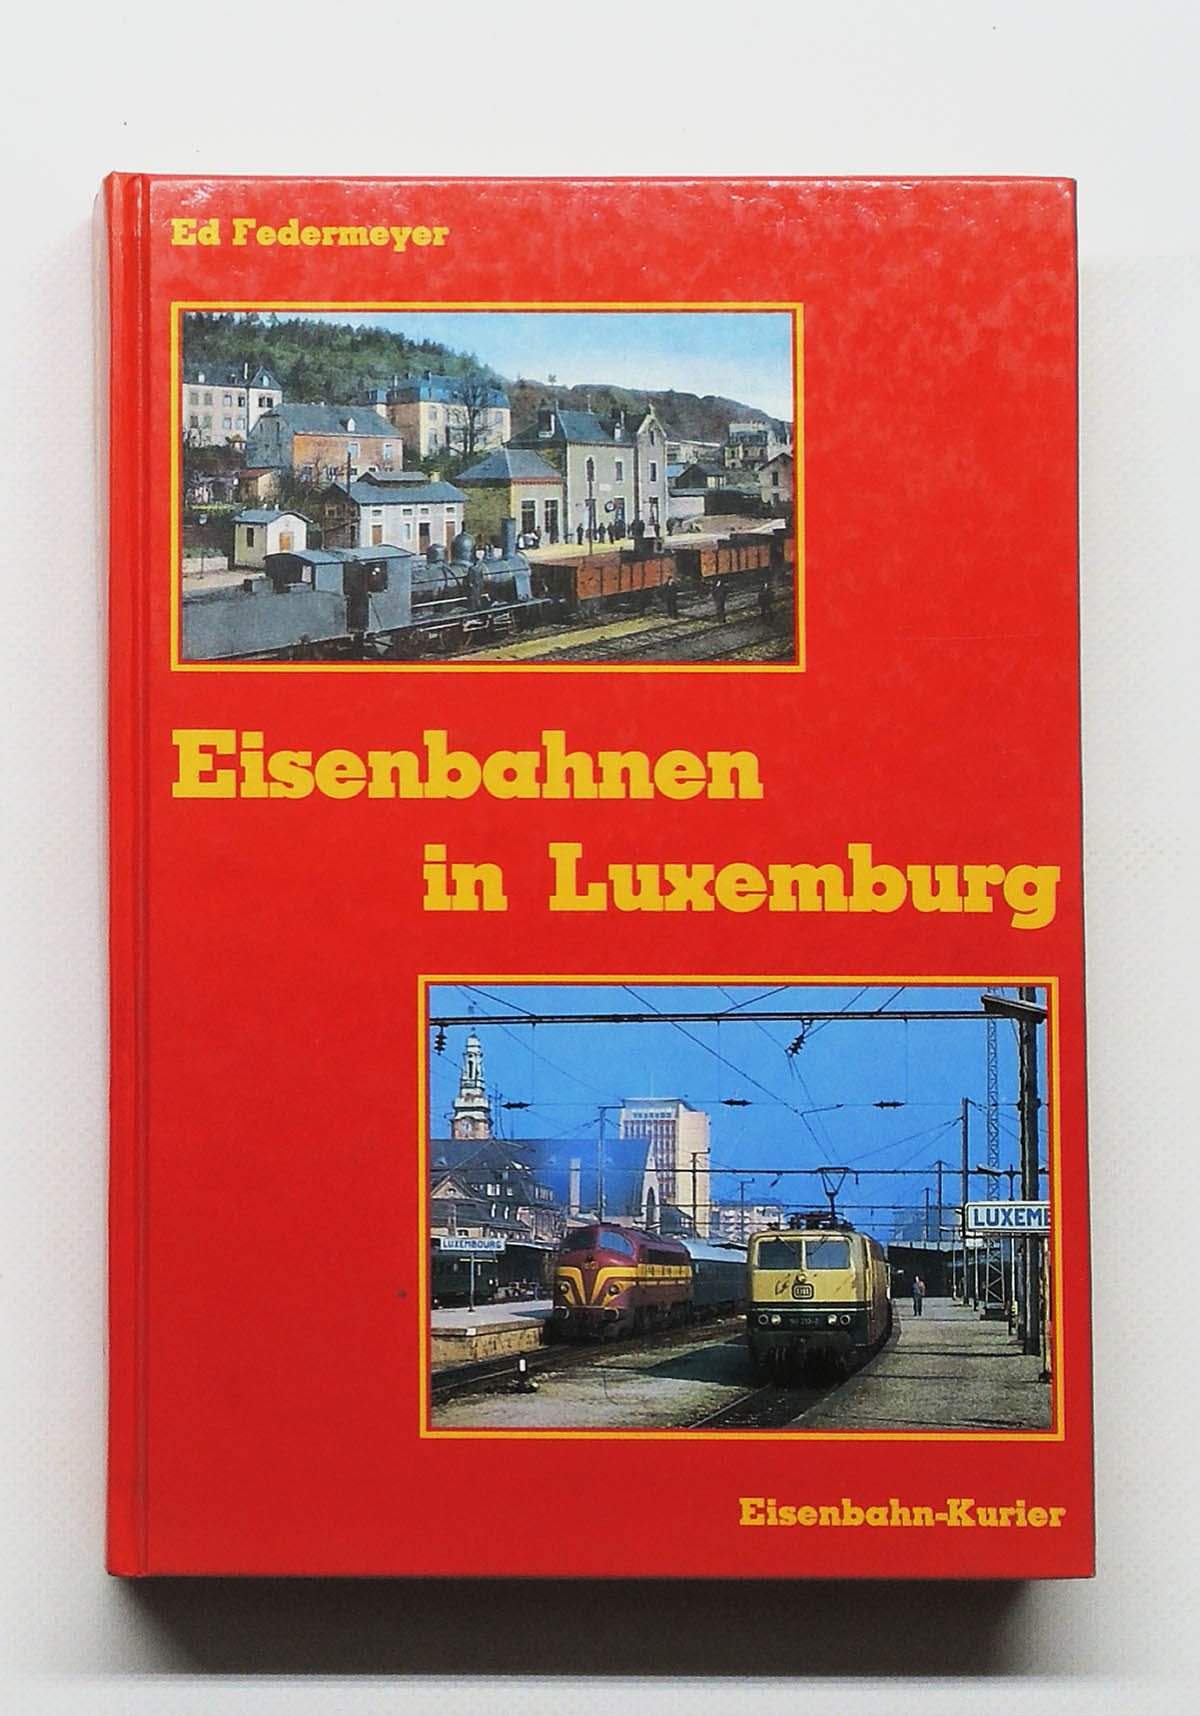 eisenbahnen in luxemburg ed federmeyer ek verlag freiburg 1984 ebay. Black Bedroom Furniture Sets. Home Design Ideas